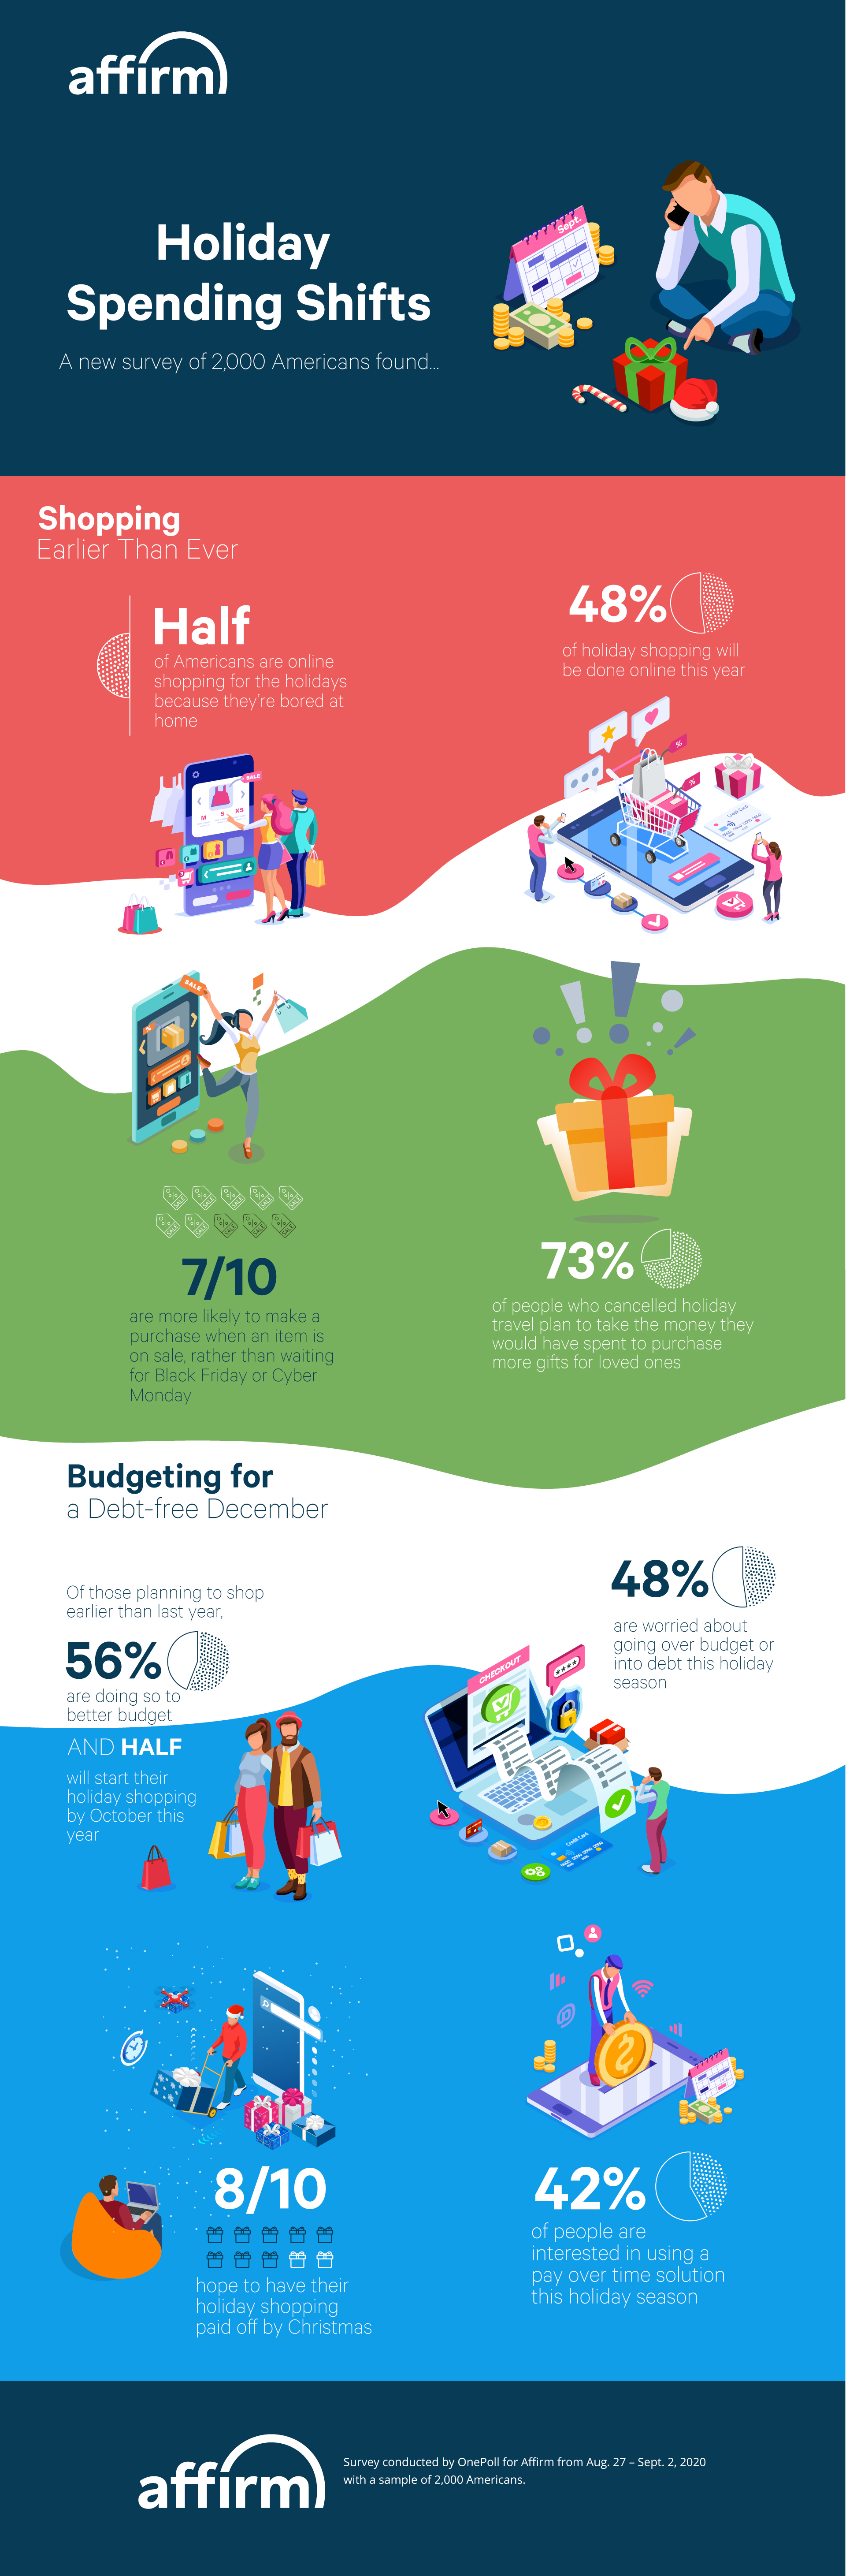 Affirm Holiday Survey Infographic